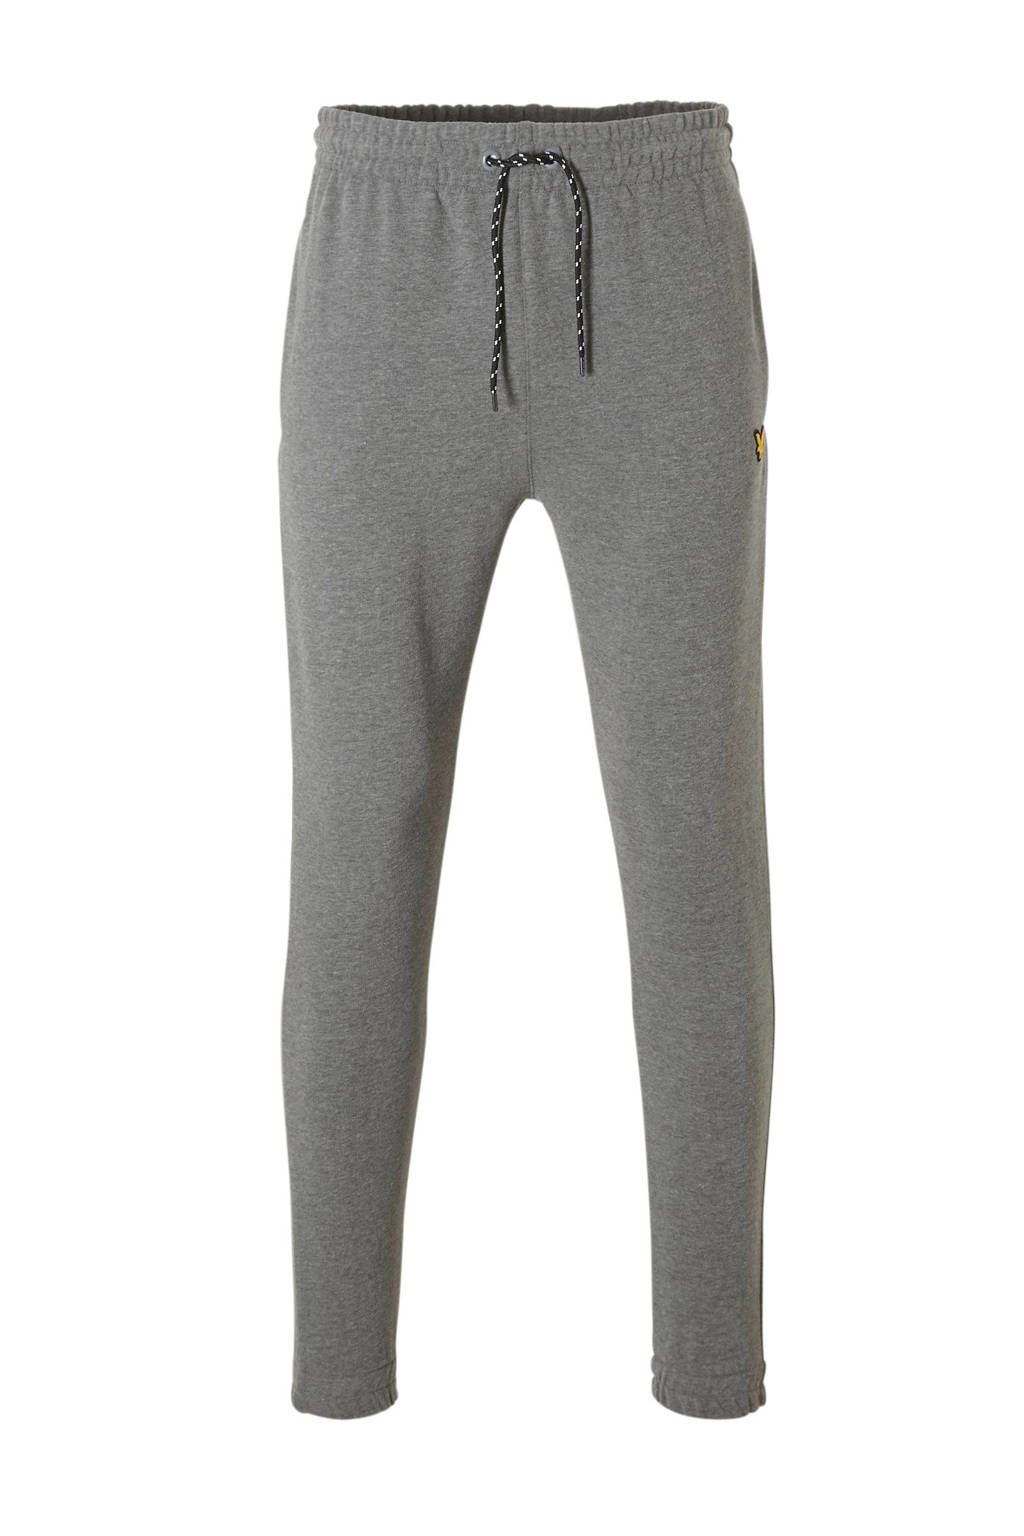 Lyle & Scott joggingbroek grijs, Grijs